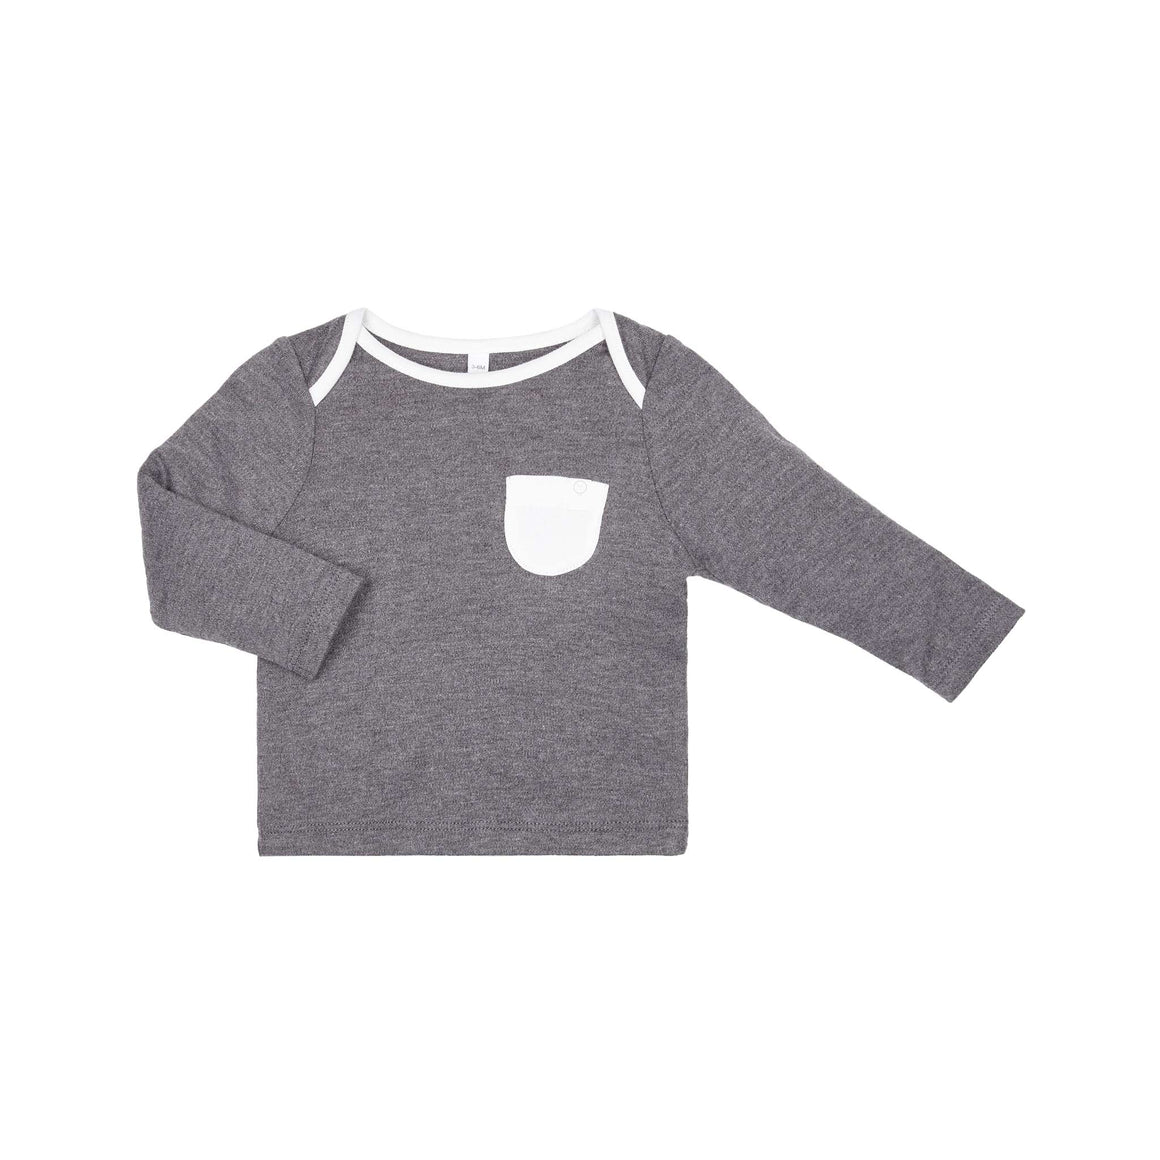 Everyday Long Sleeve T-Shirt in Lunar